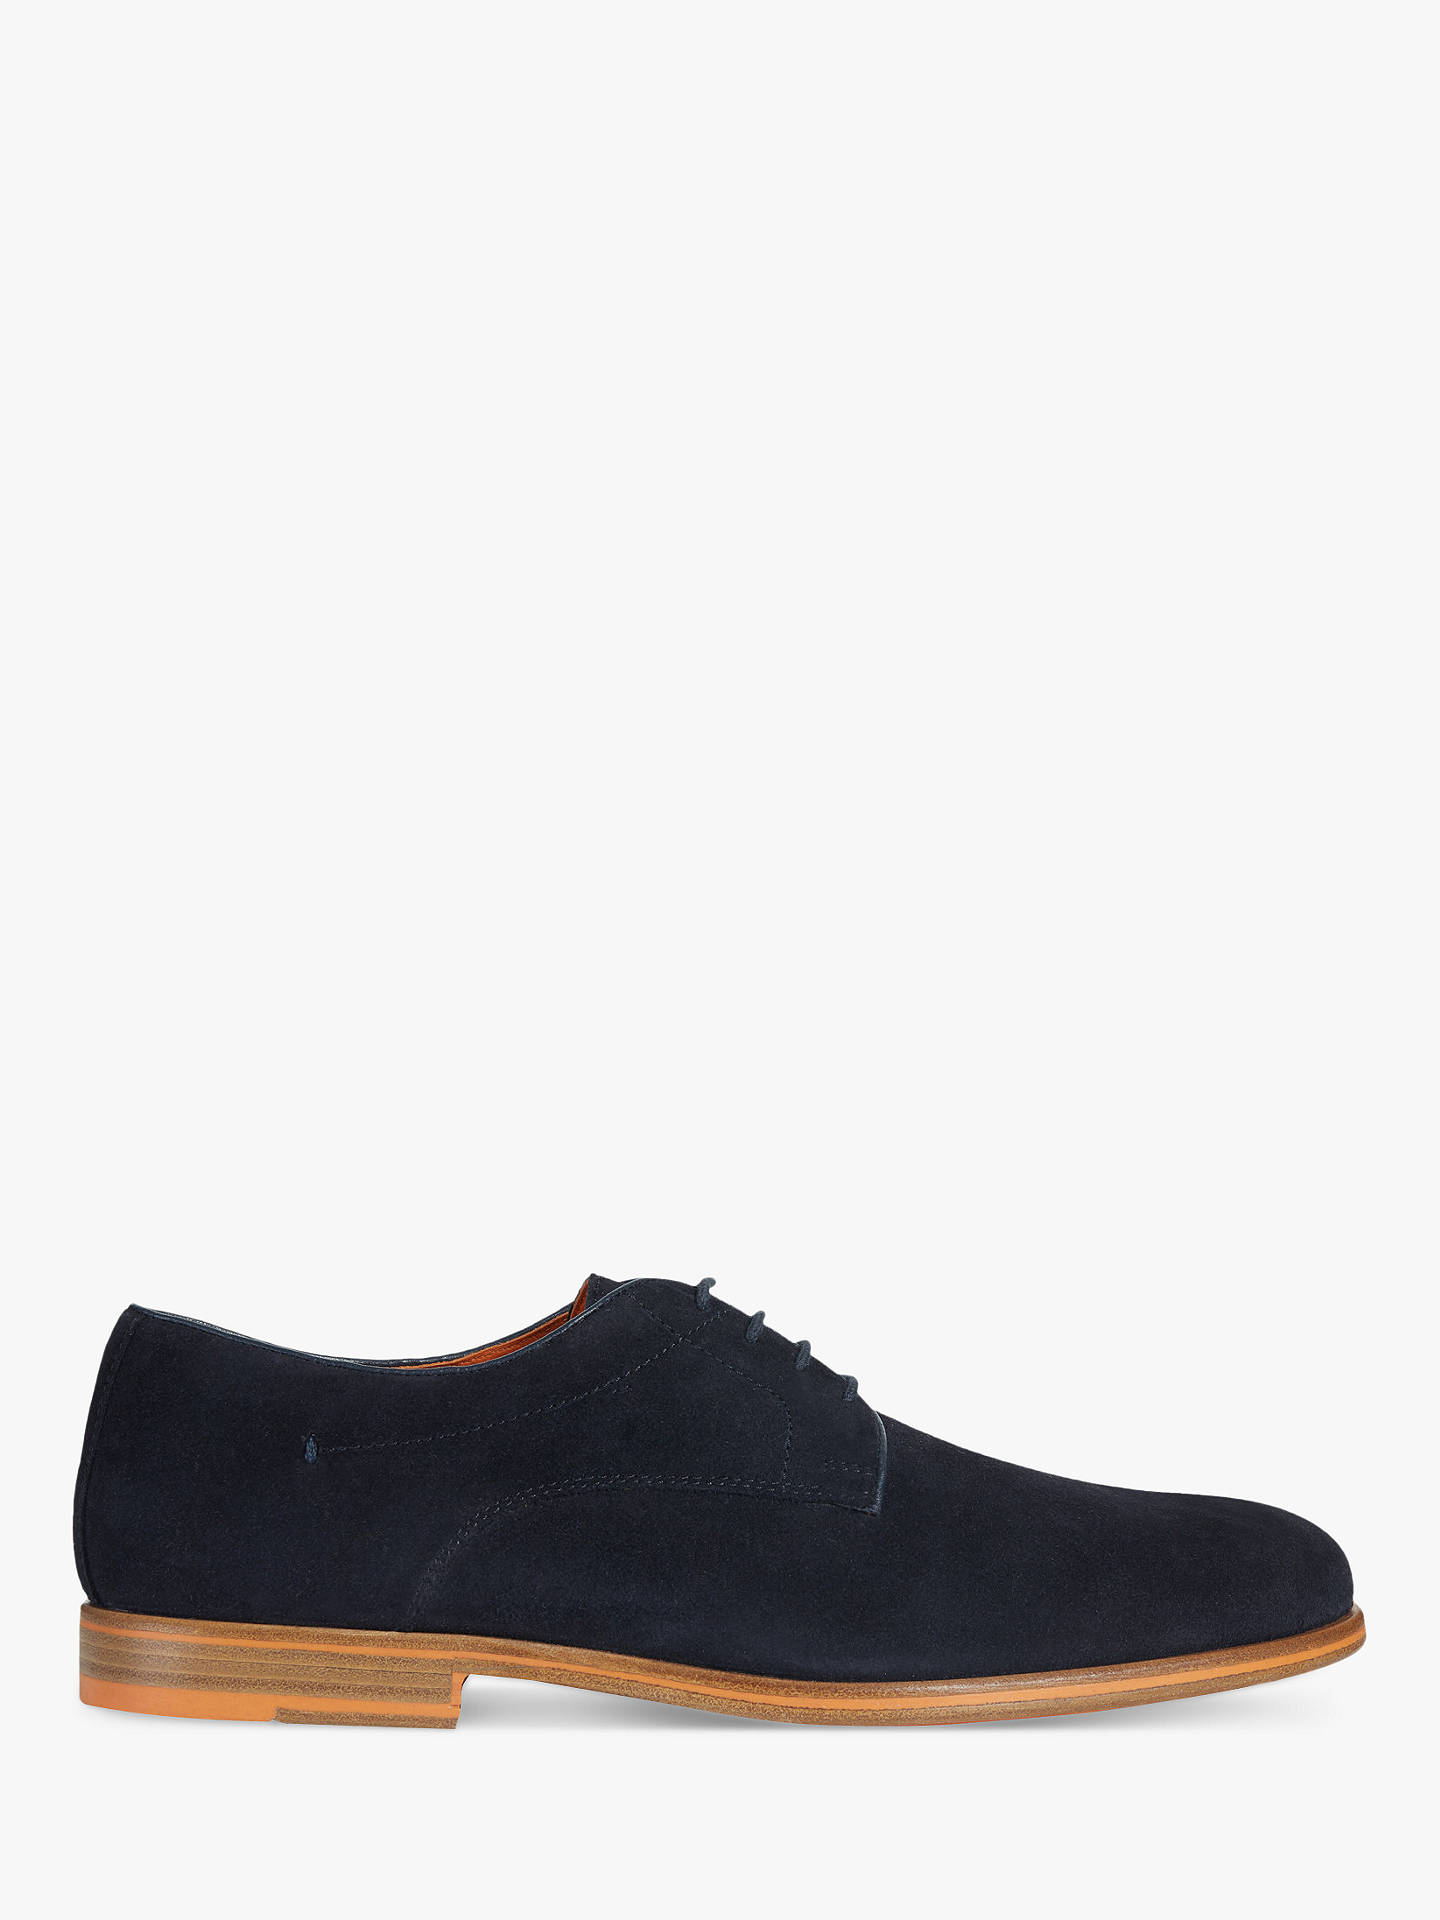 c850442bbf Buy Geox Bayle Suede Derby Shoes, Navy, 10 Online at johnlewis.com ...